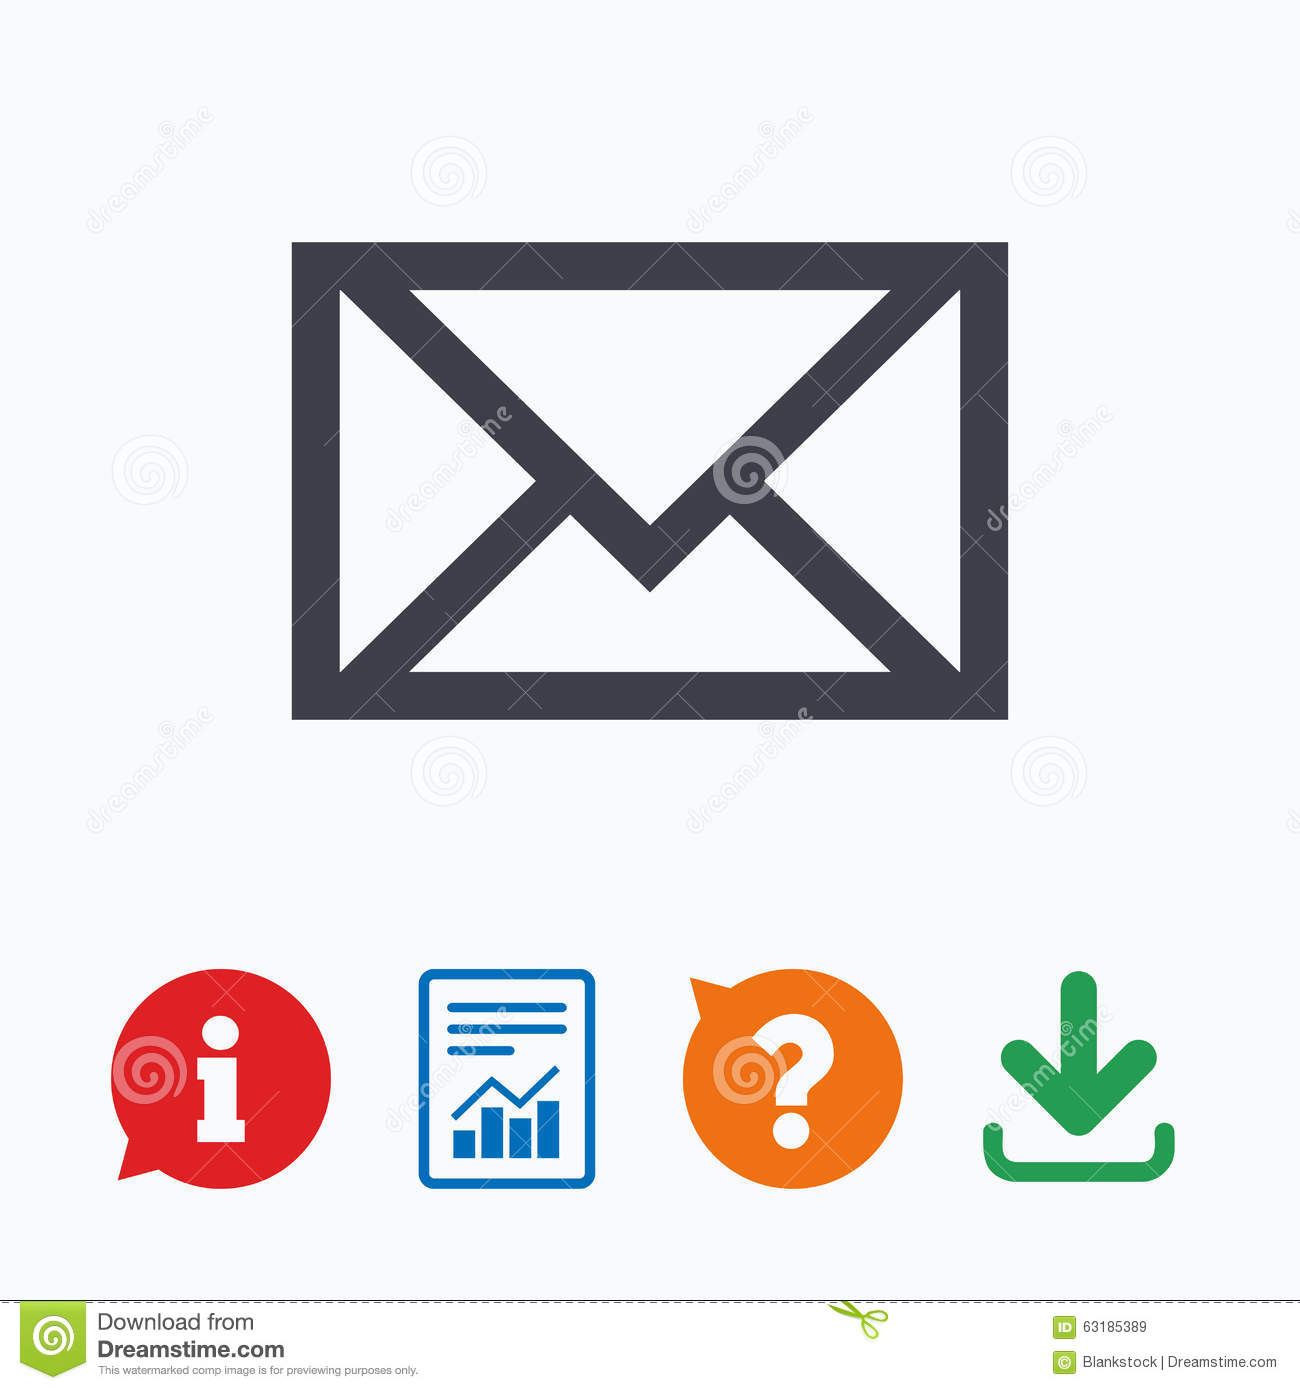 Mail icon. Envelope symbol. Message sign